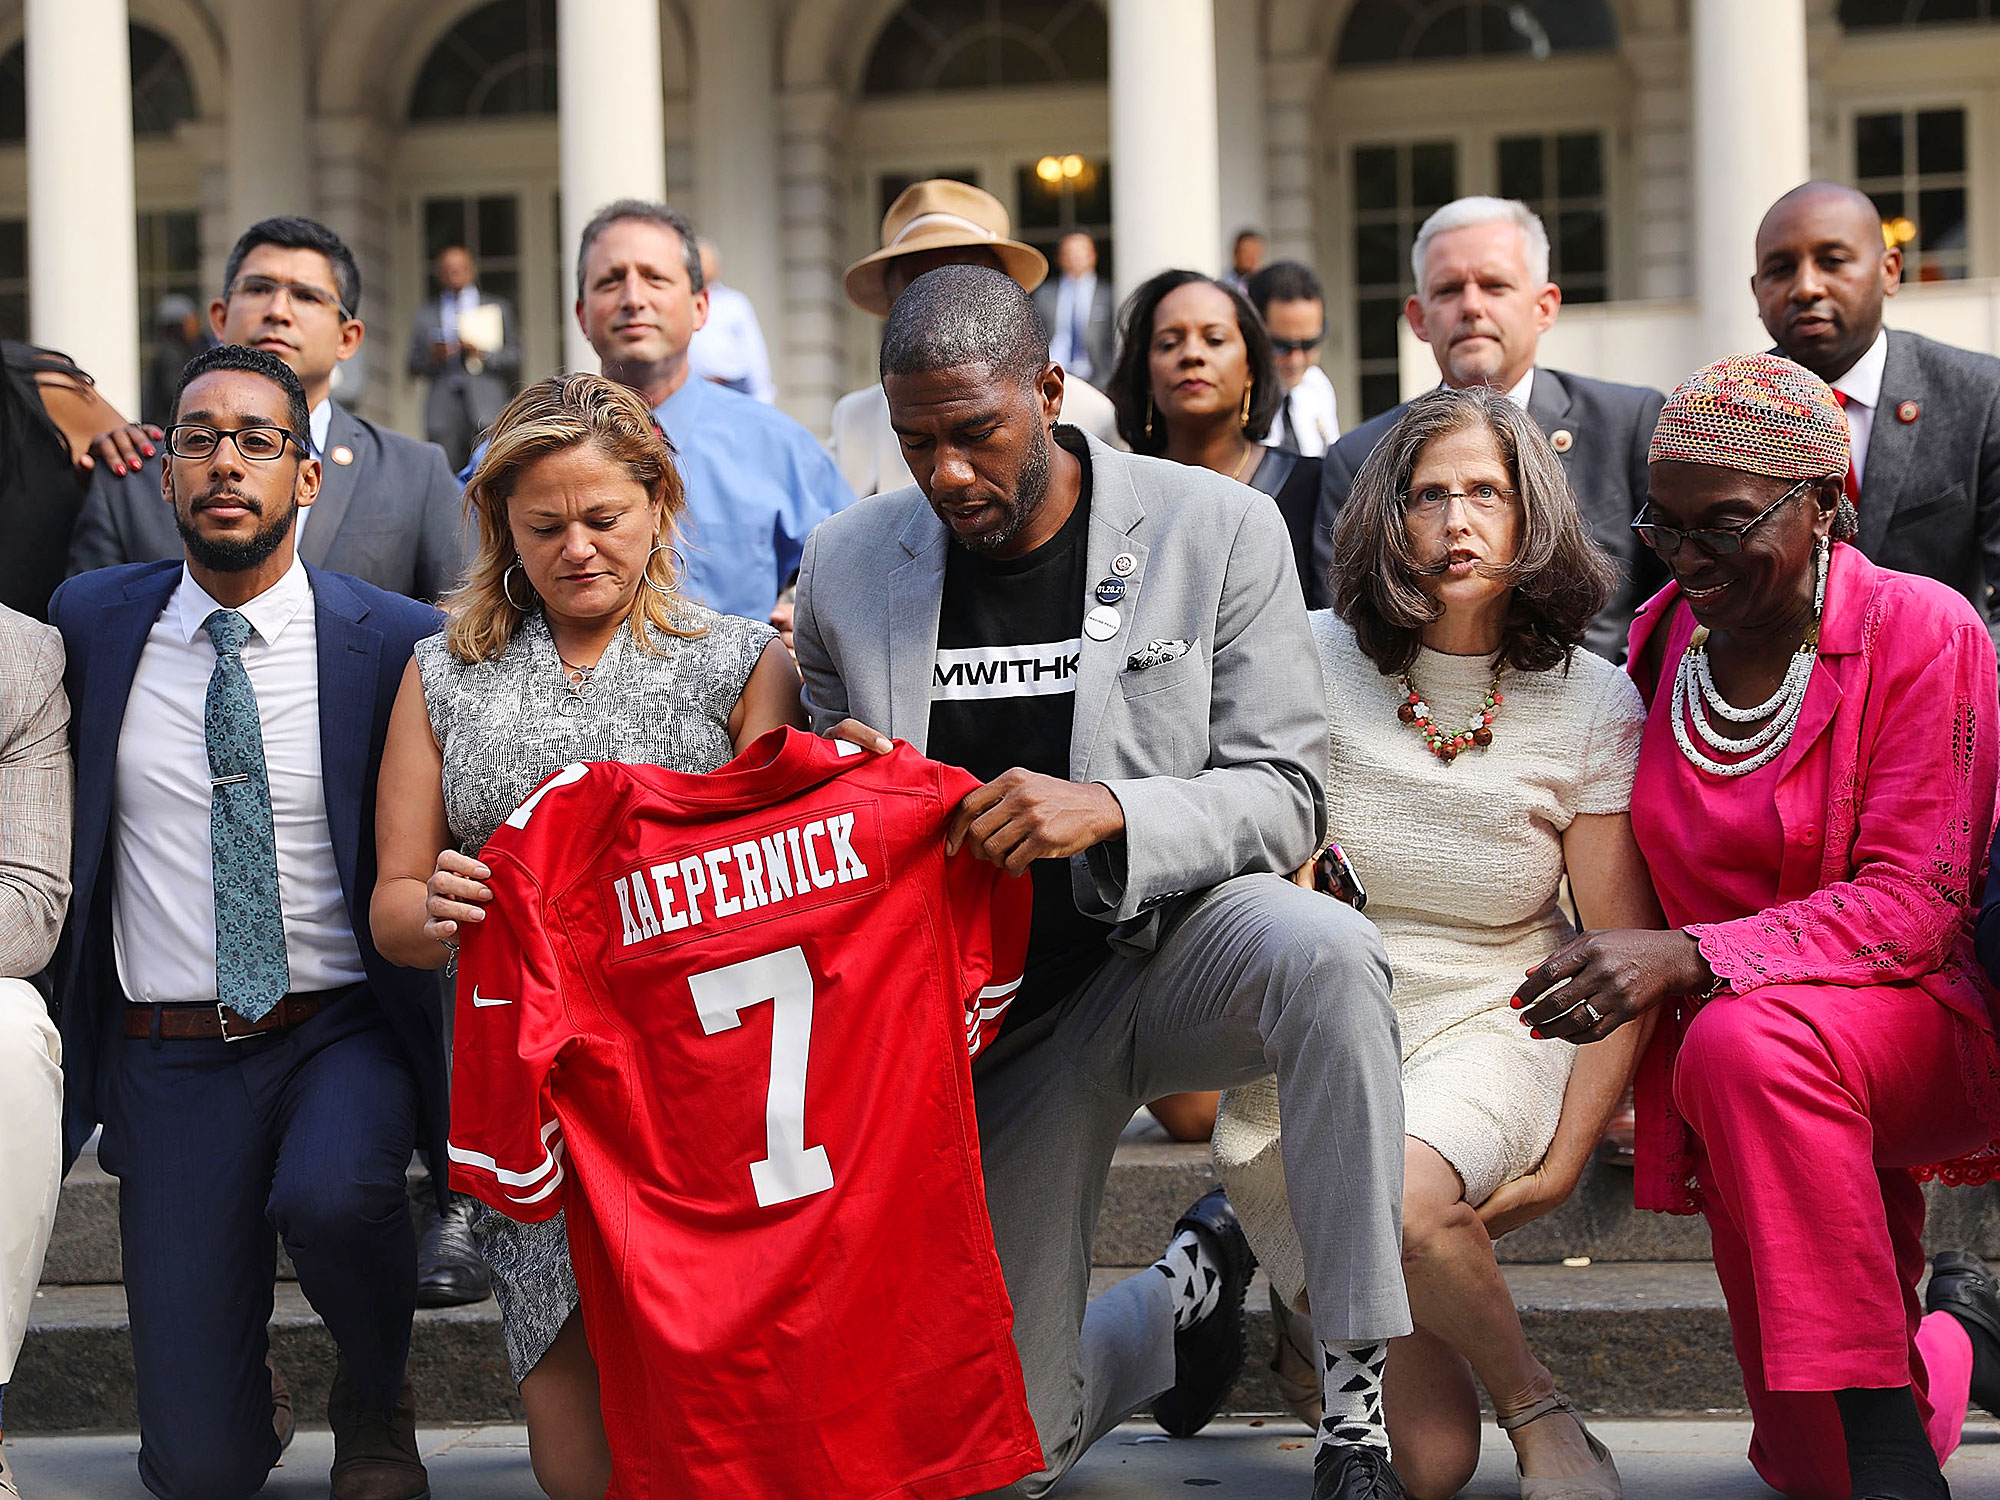 New York City Council members take a knee on the steps of City Hall after Donald Trump condemned the NFL players who choose to kneel.